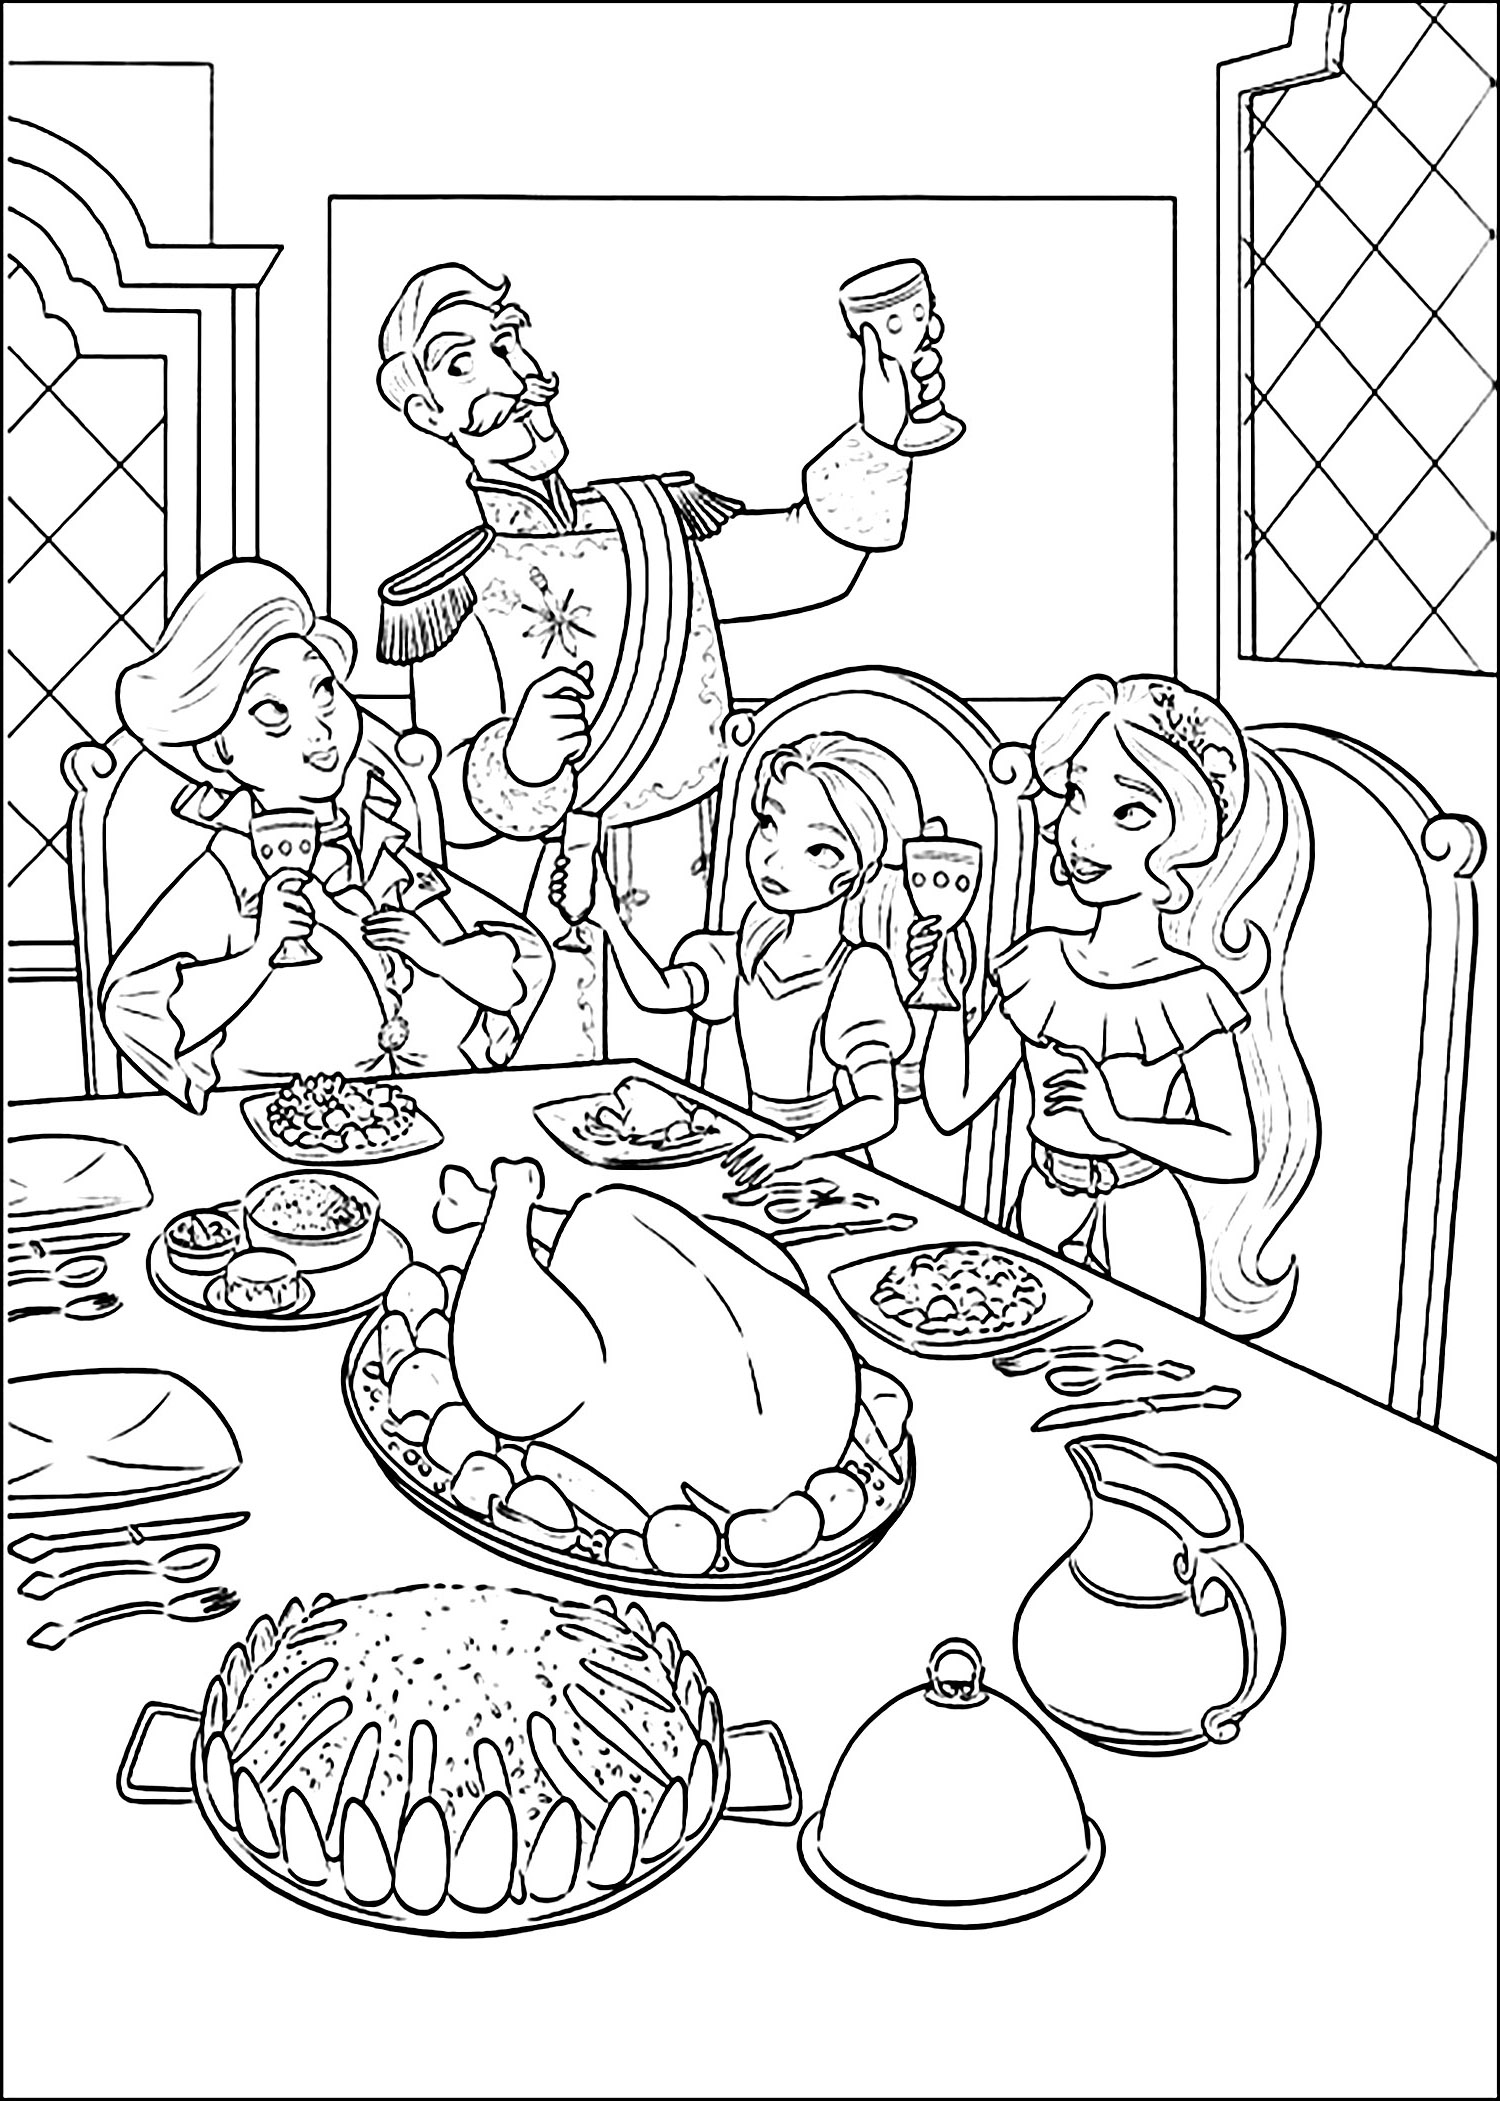 Elena Avalor coloring page to print and color for free